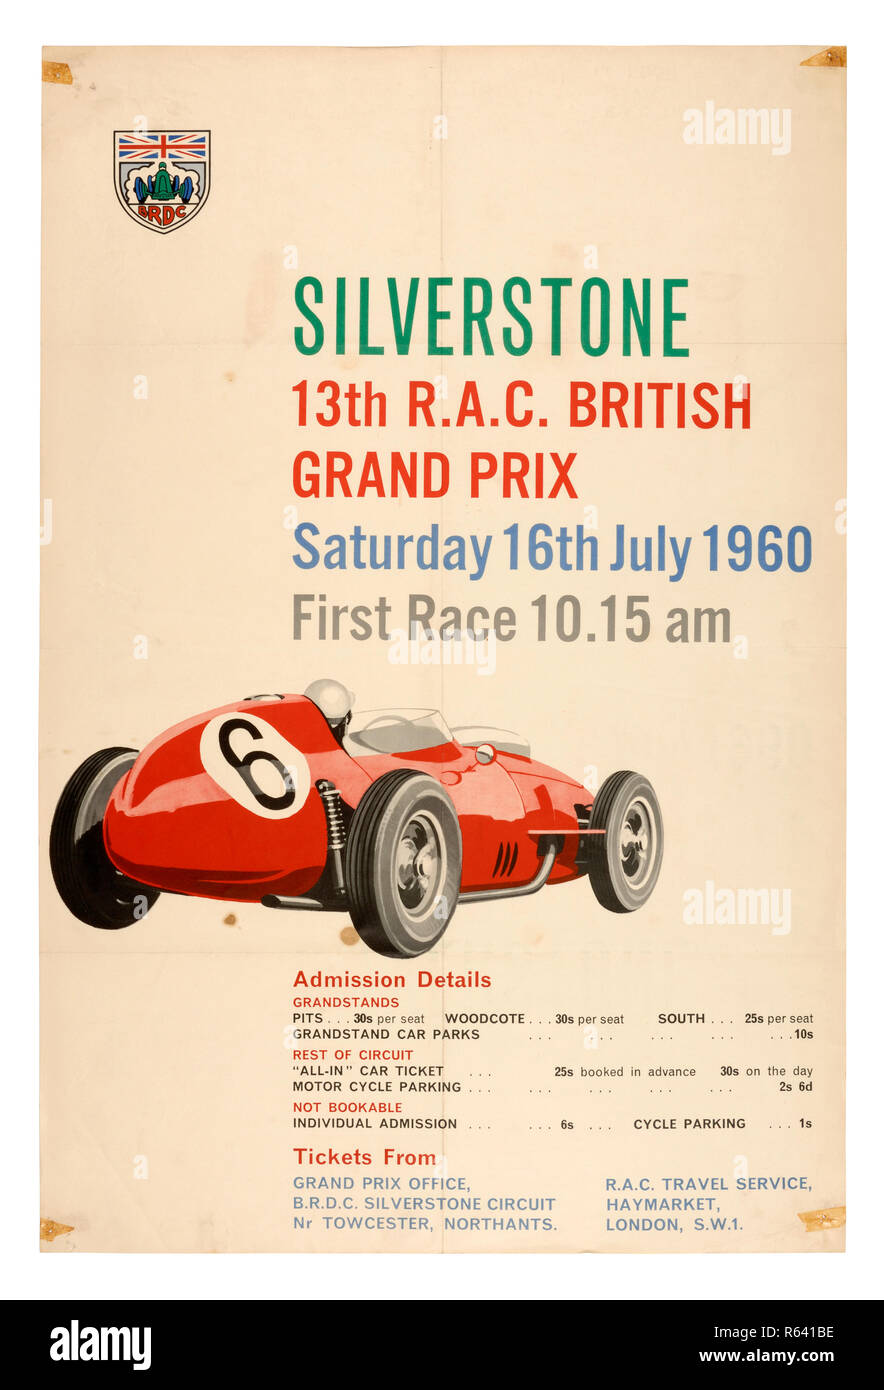 Vintage poster for the 1960 RAC British Grand Prix Formula 1 race at Silverstone - Stock Image